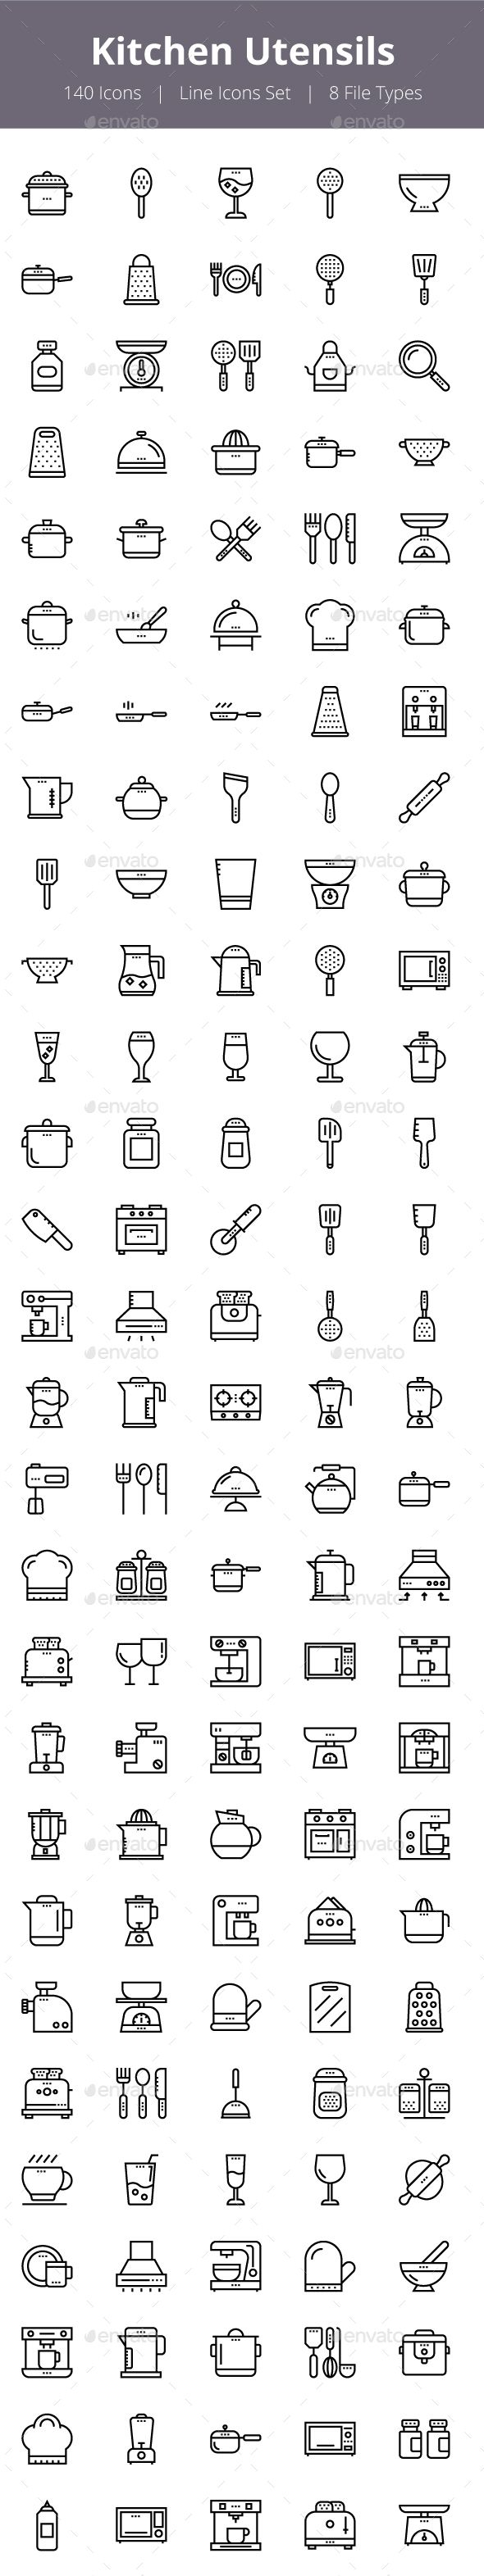 125+ Kitchen Utensils Line Icons